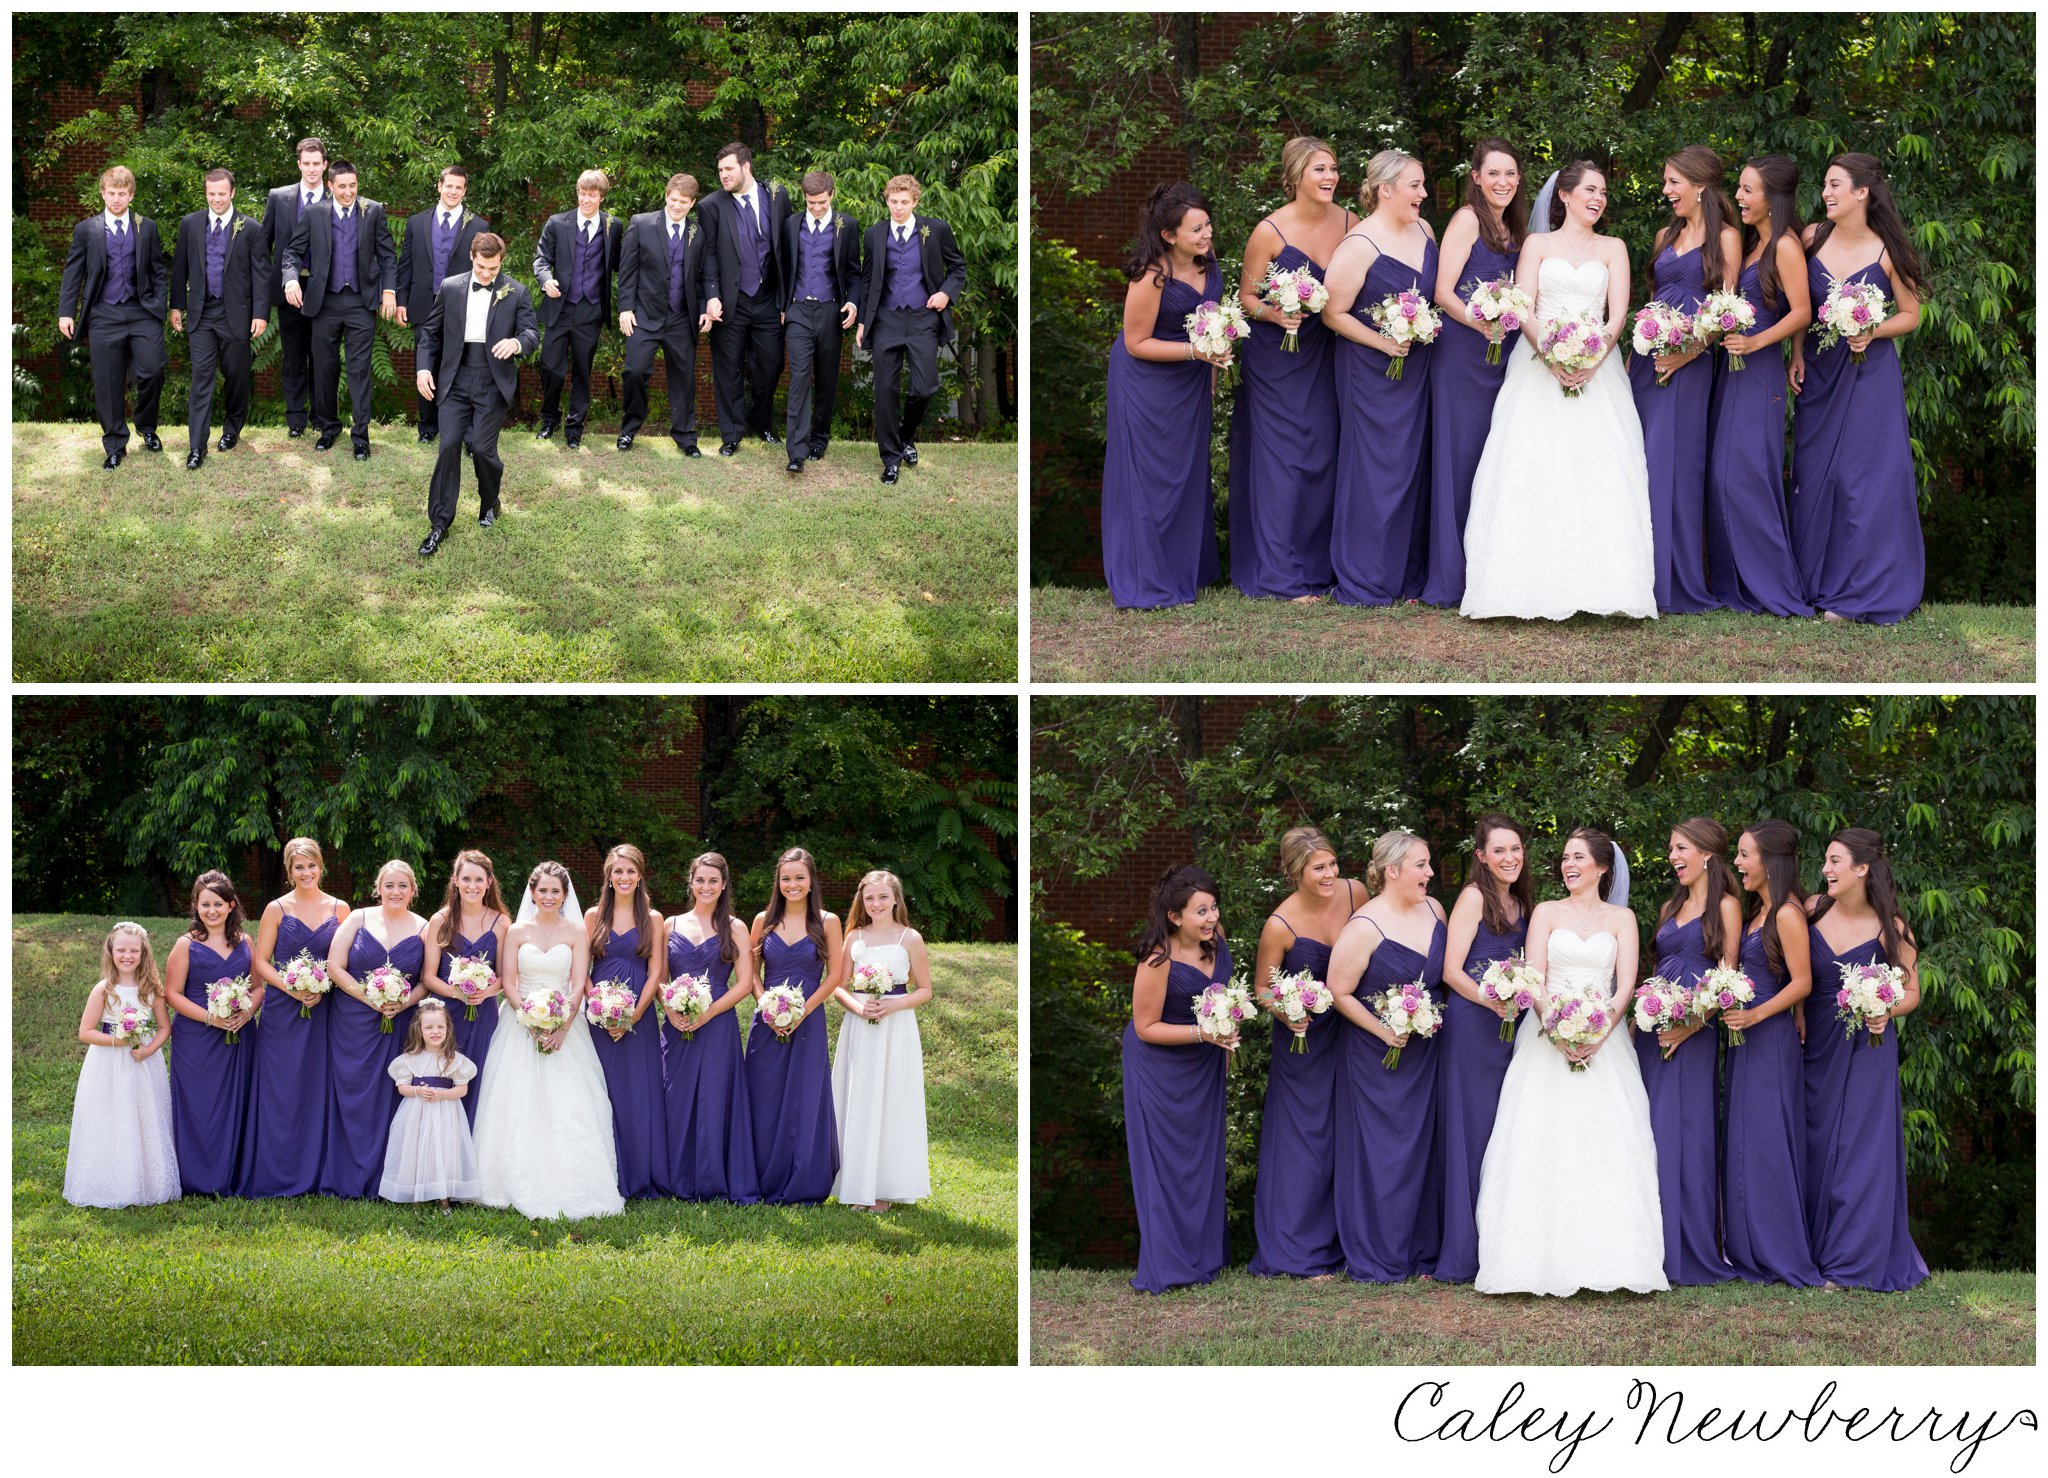 brentwood-tn-wedding-photographer.jpg